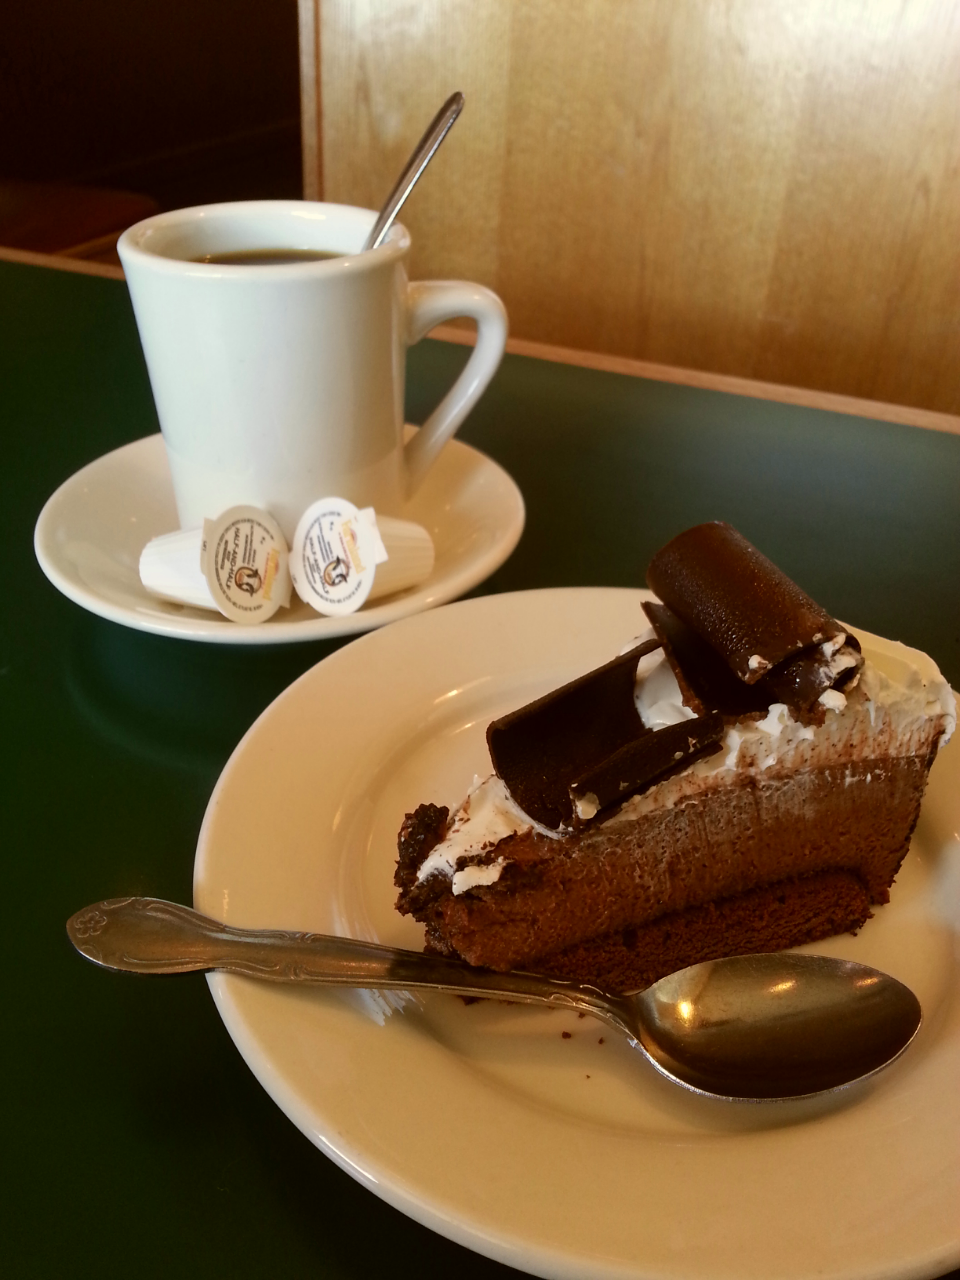 Copy of Copy of Copy of Copy of Copy of Copy of Copy of Chocolate Mousse Cake and Coffee!